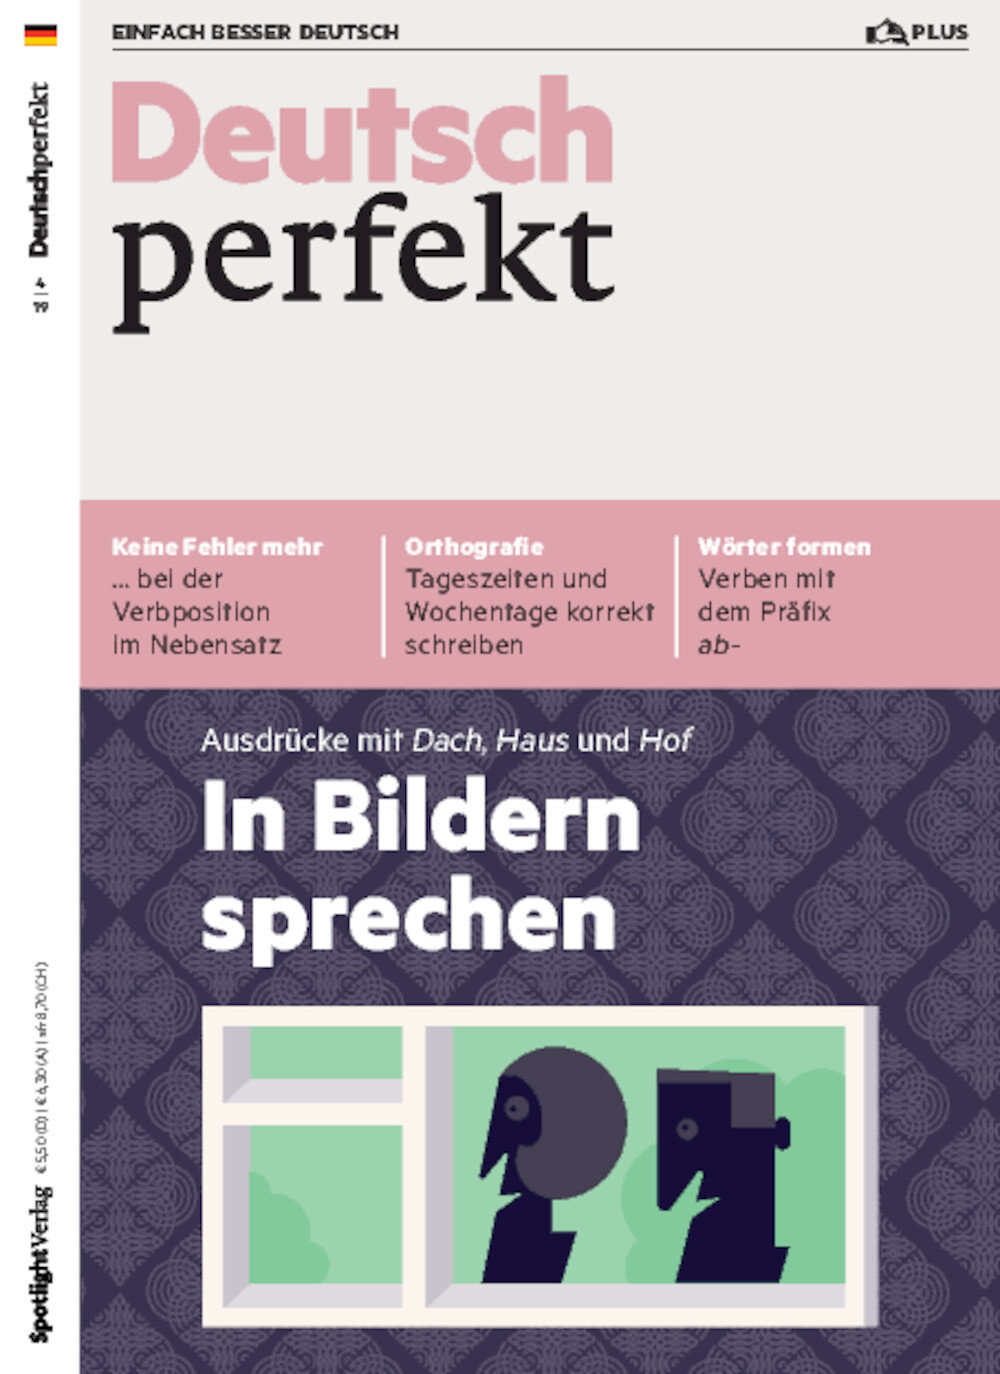 Deutsch perfekt PLUS ePaper 04/2019